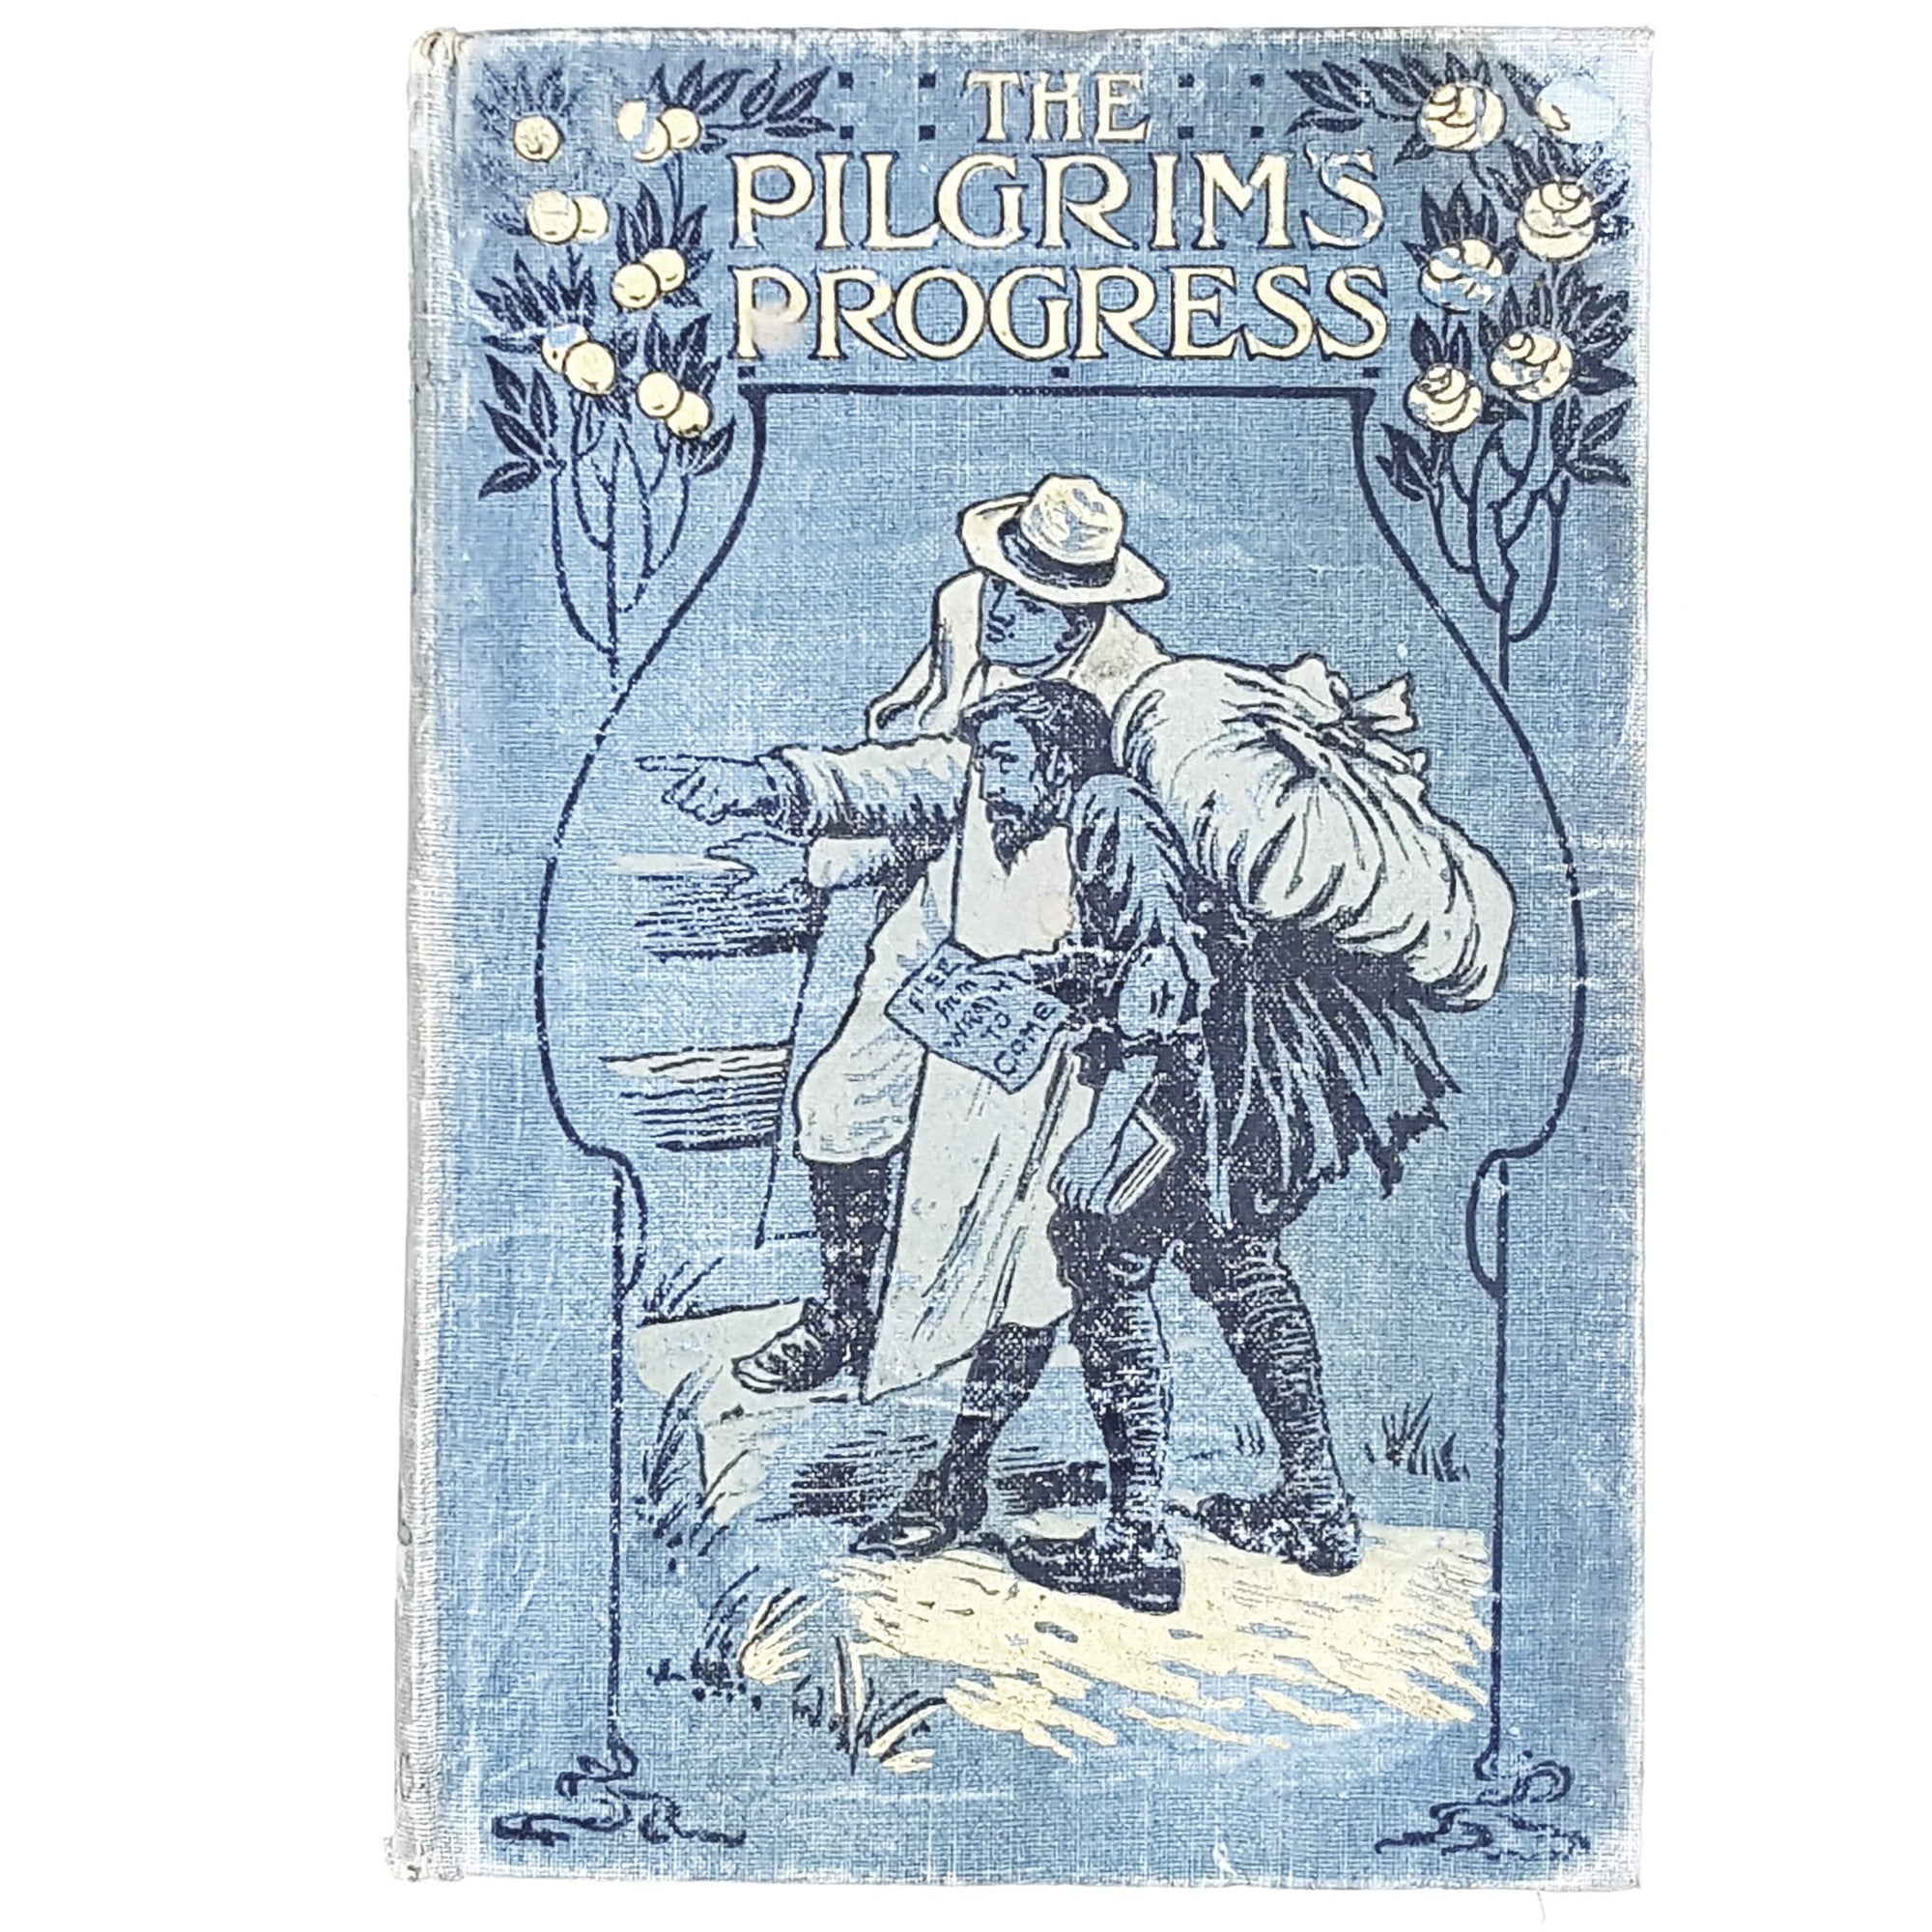 Illustrated The Pilgrim's Progress by John Bunyan